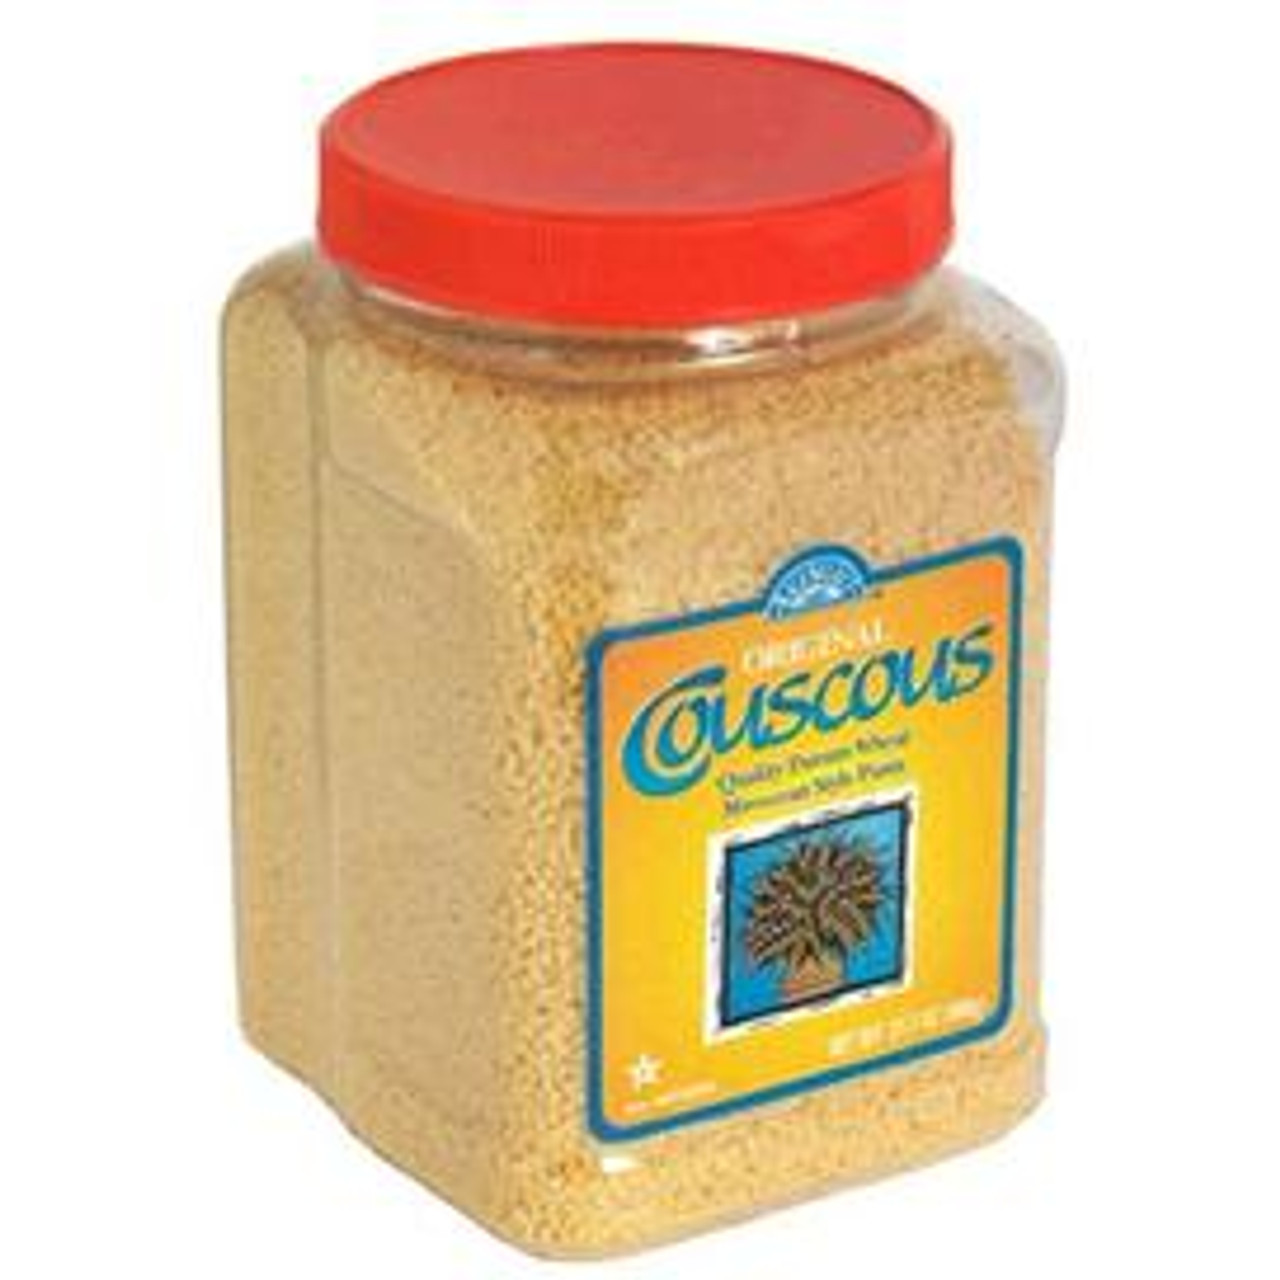 Original Couscous